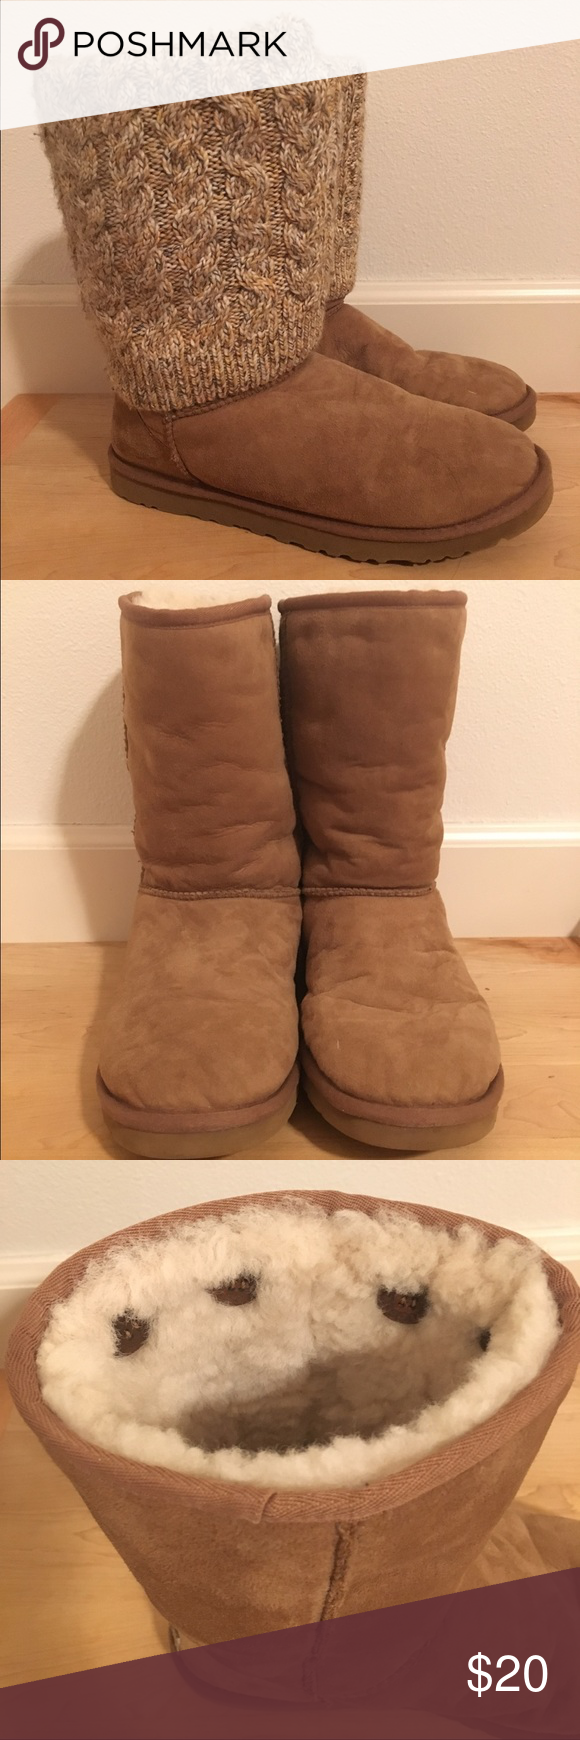 Chestnut colored ugg boots with removable cuffs